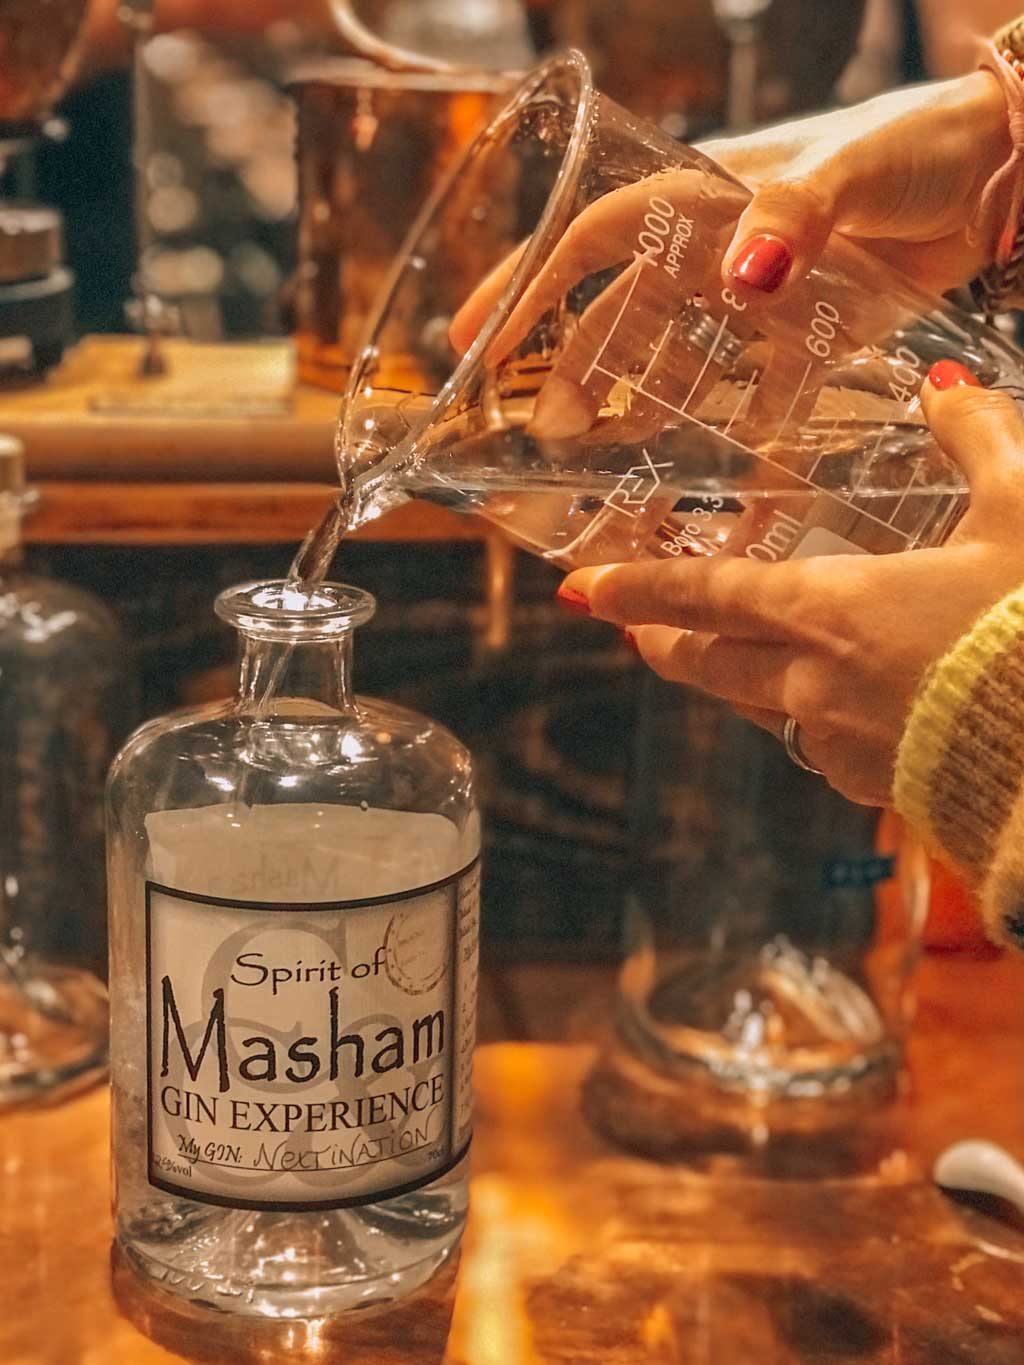 Spirit of Masham Gin